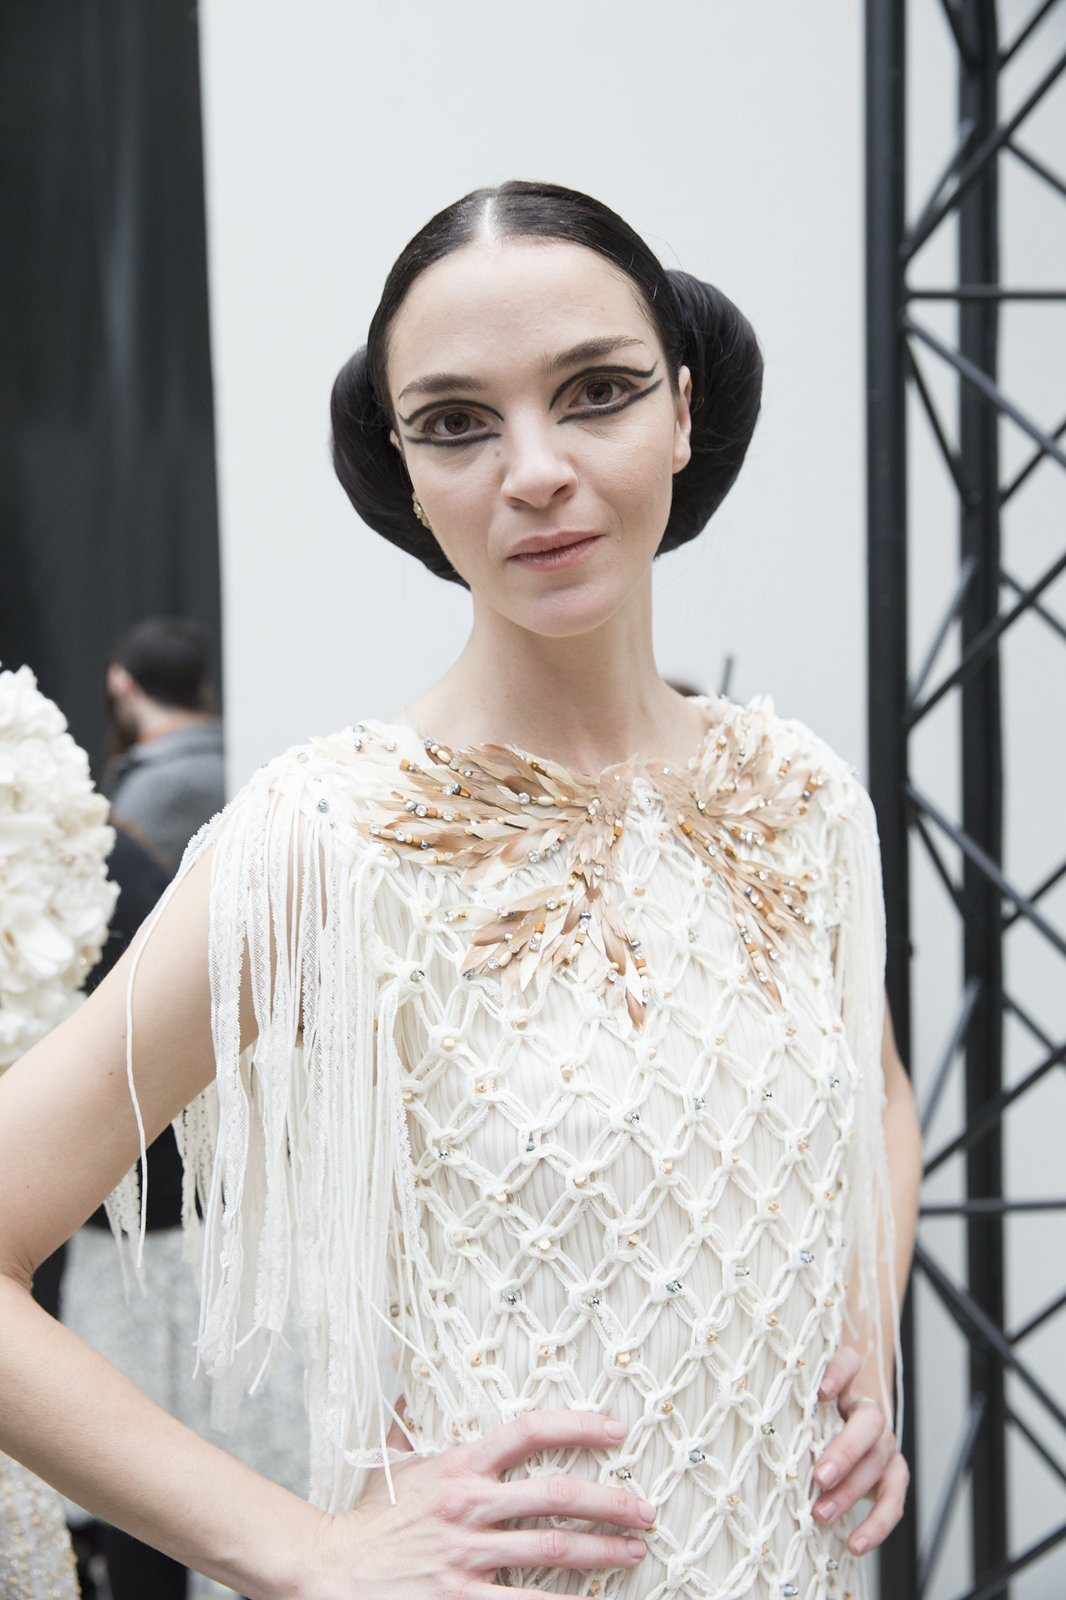 chanel-spring-2016-couture-backstage-kevin-tachman-26